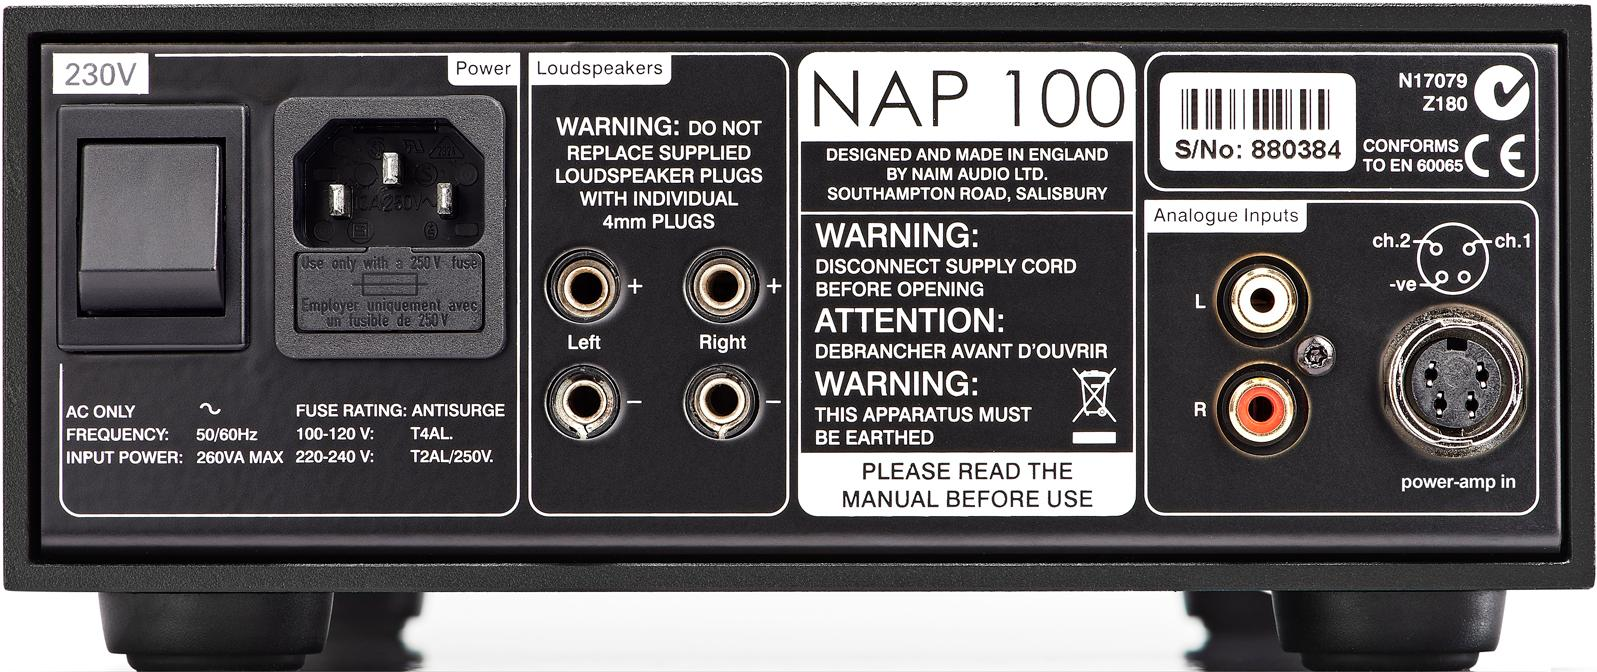 audio solutions naim nap 100 stereo power amplifier. Black Bedroom Furniture Sets. Home Design Ideas